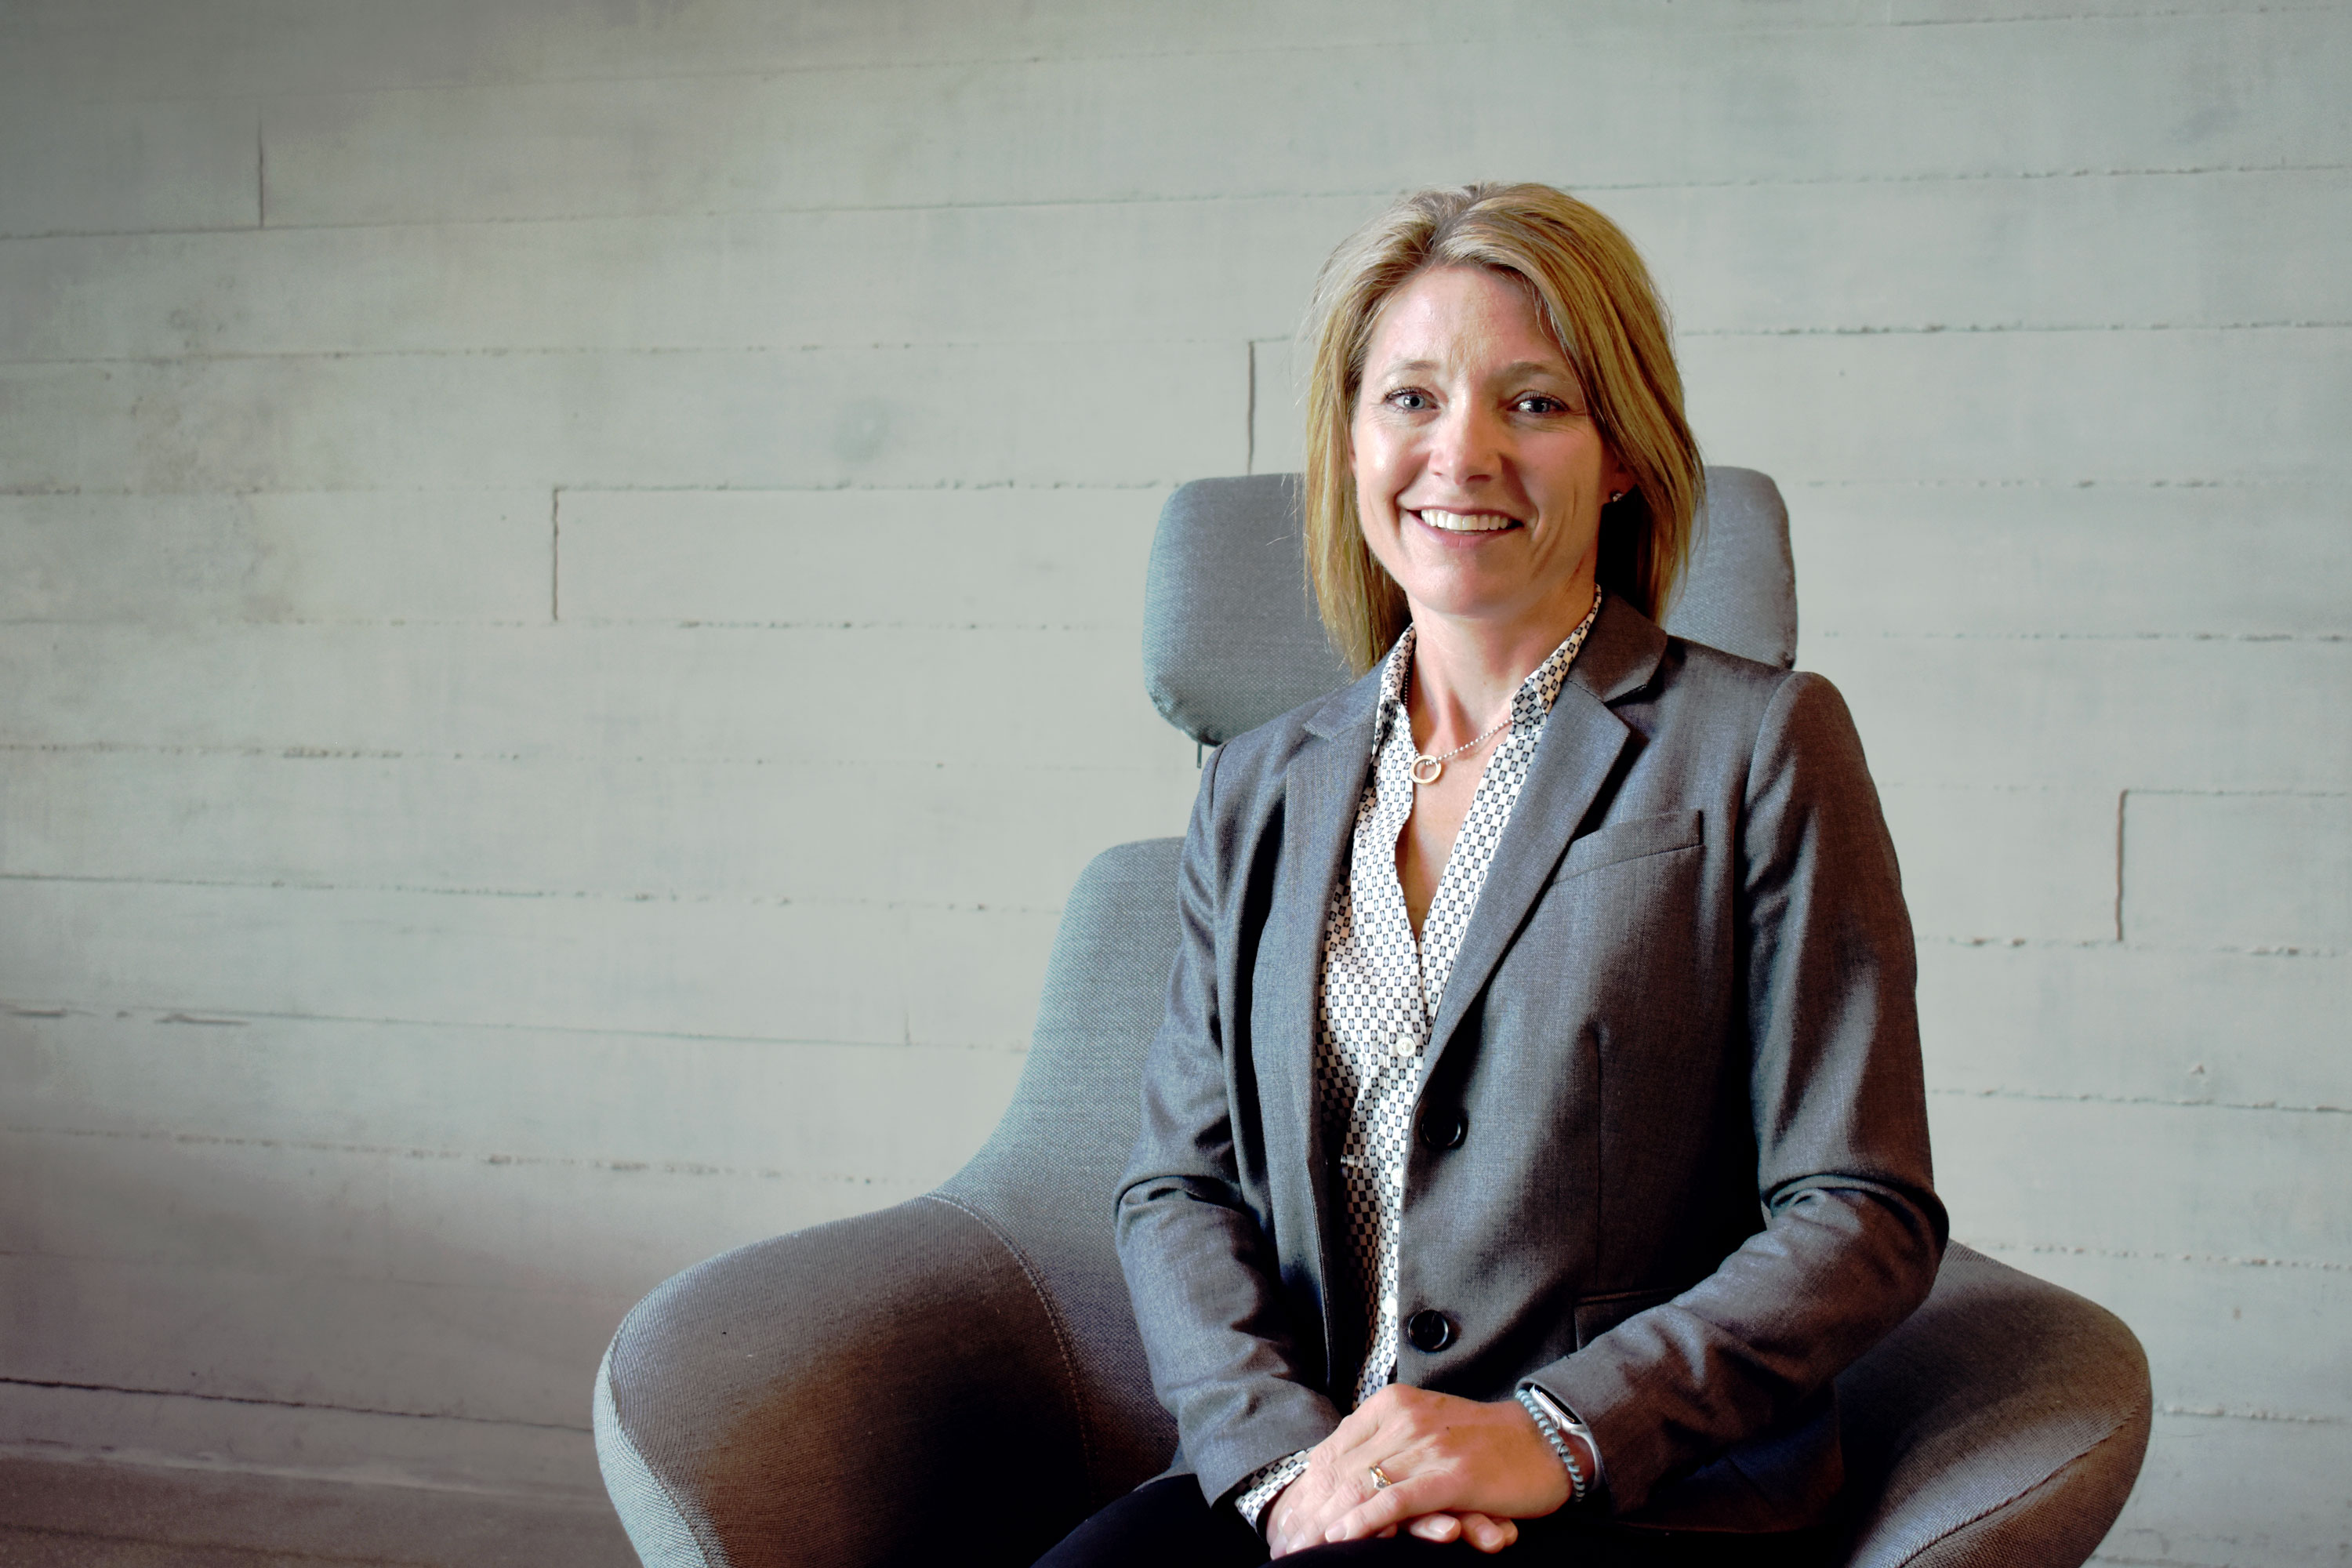 C.D. Smith Construction's Holly Brenner talks to Insight about green building sustainability costs, trends & technology.